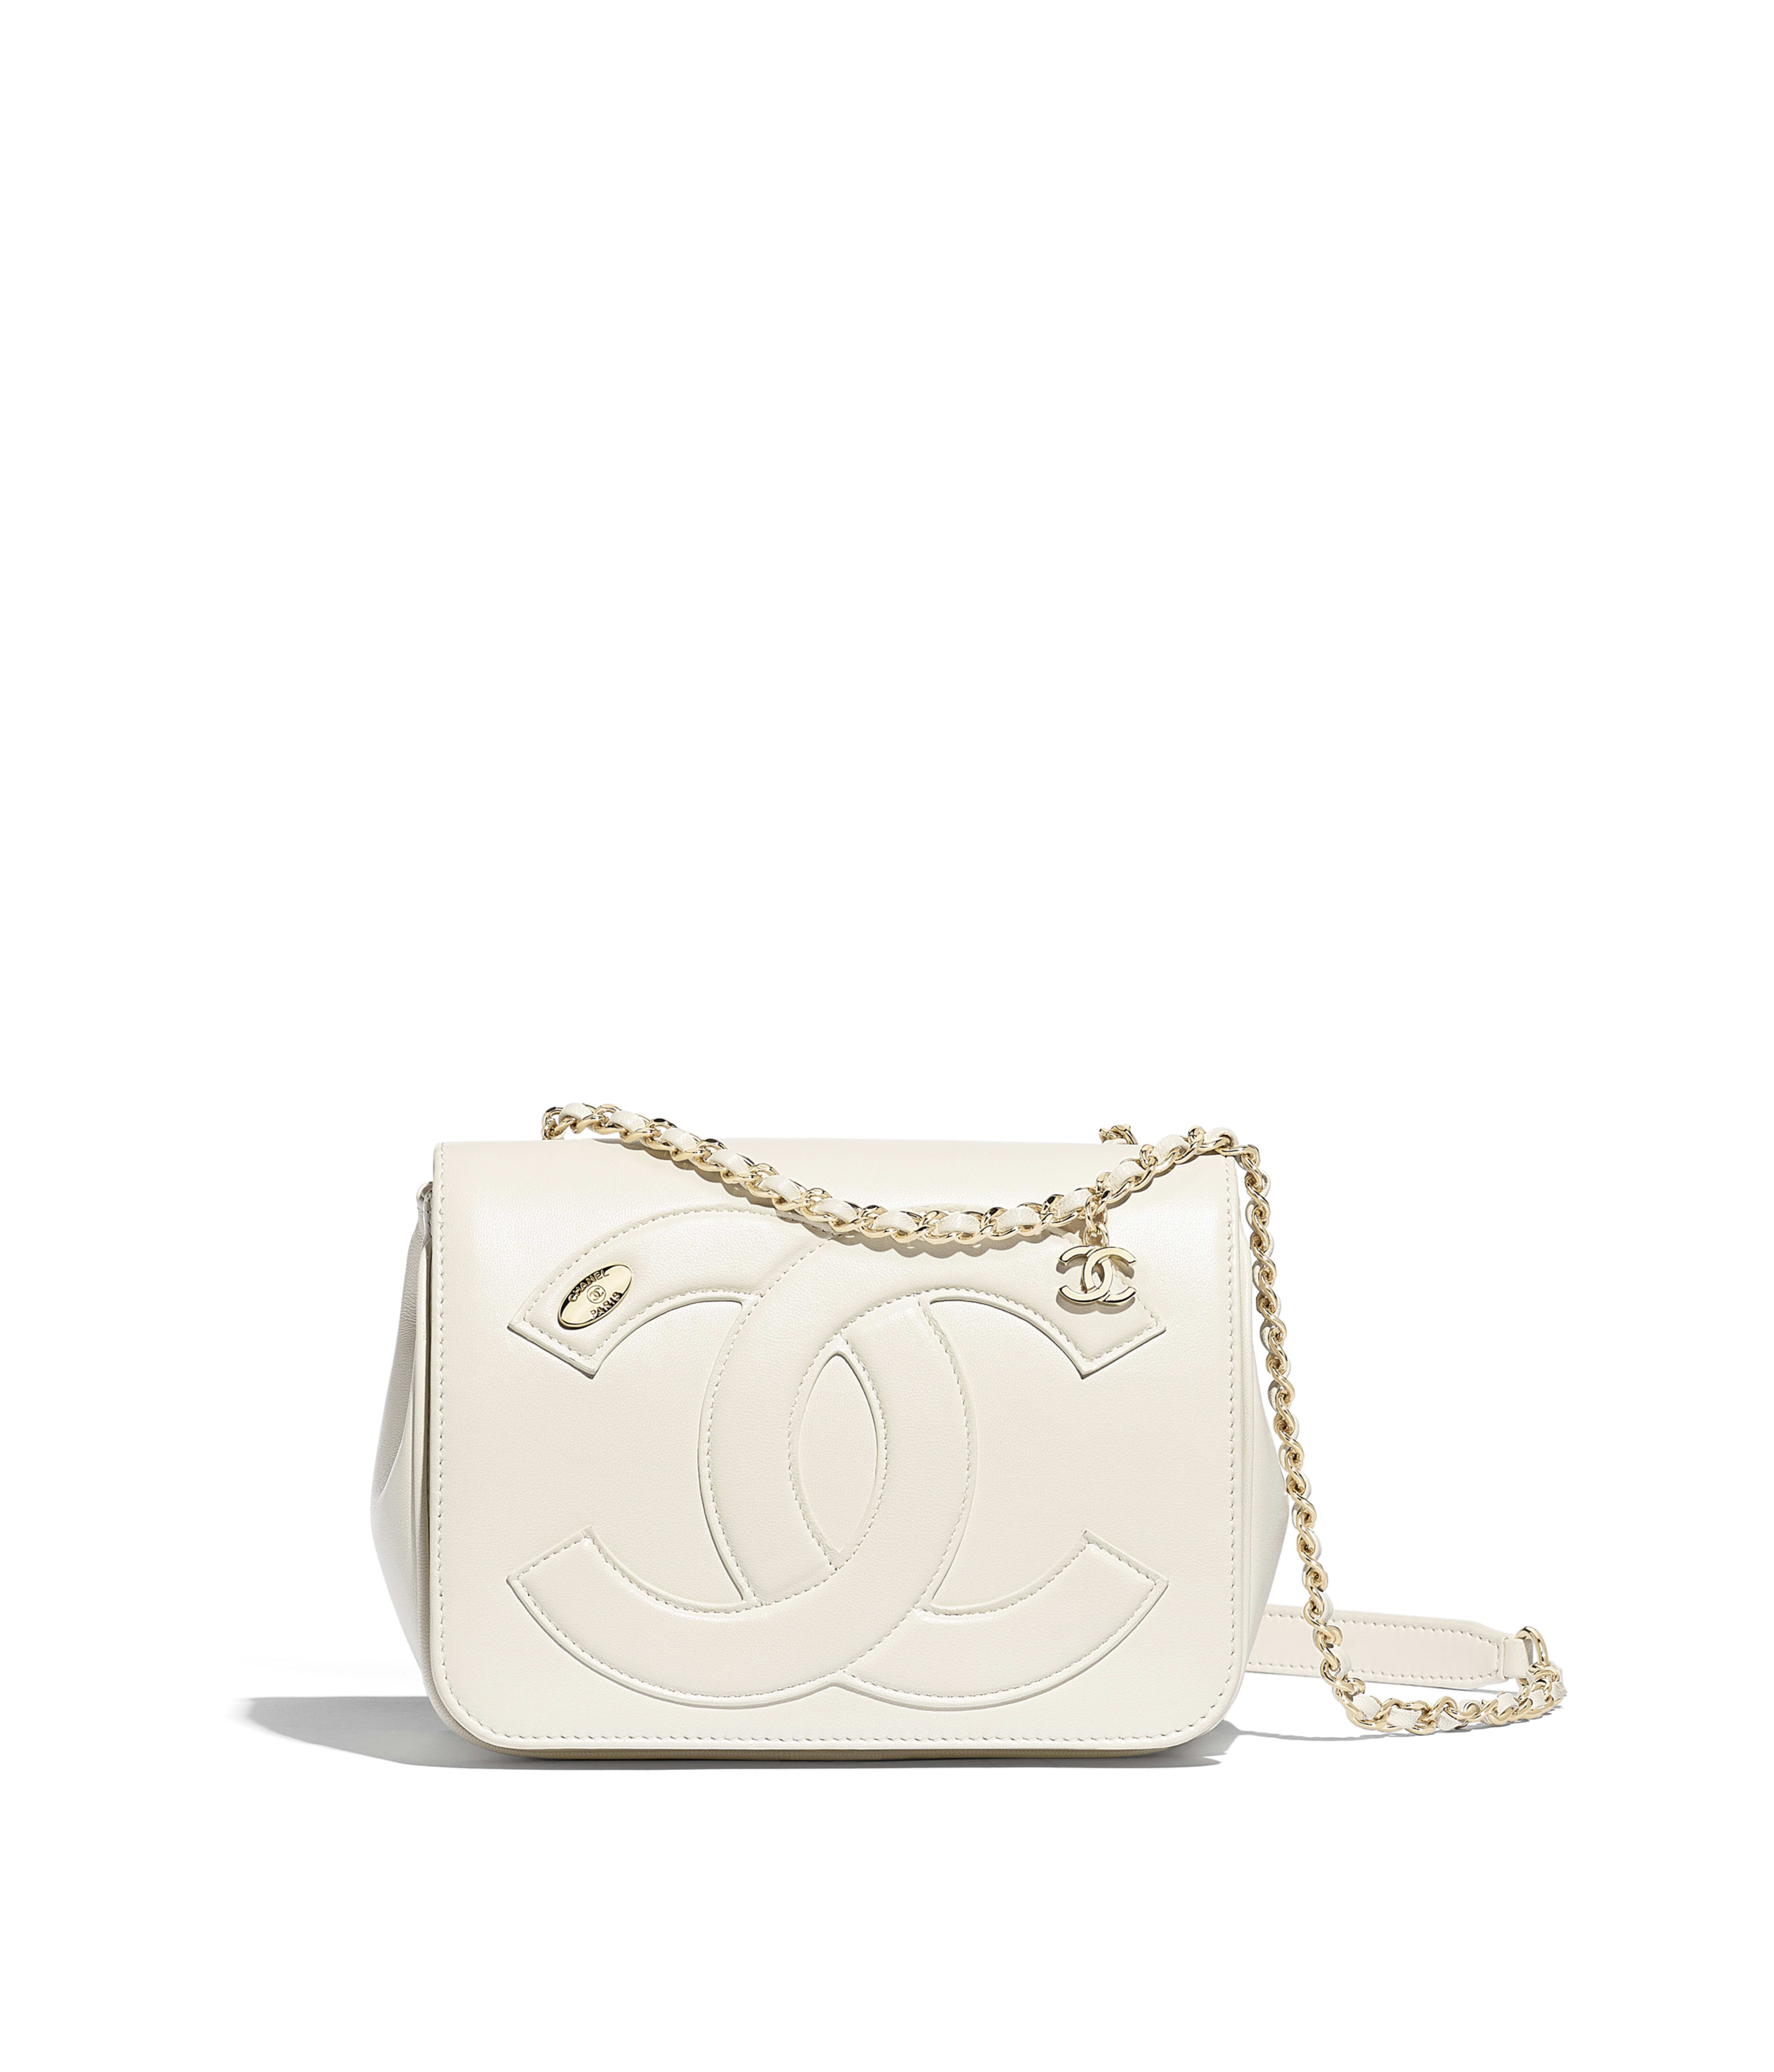 Flap Bag Lambskin   Gold-Tone Metal, White Ref. AS0321B0012010601 bed168ab079